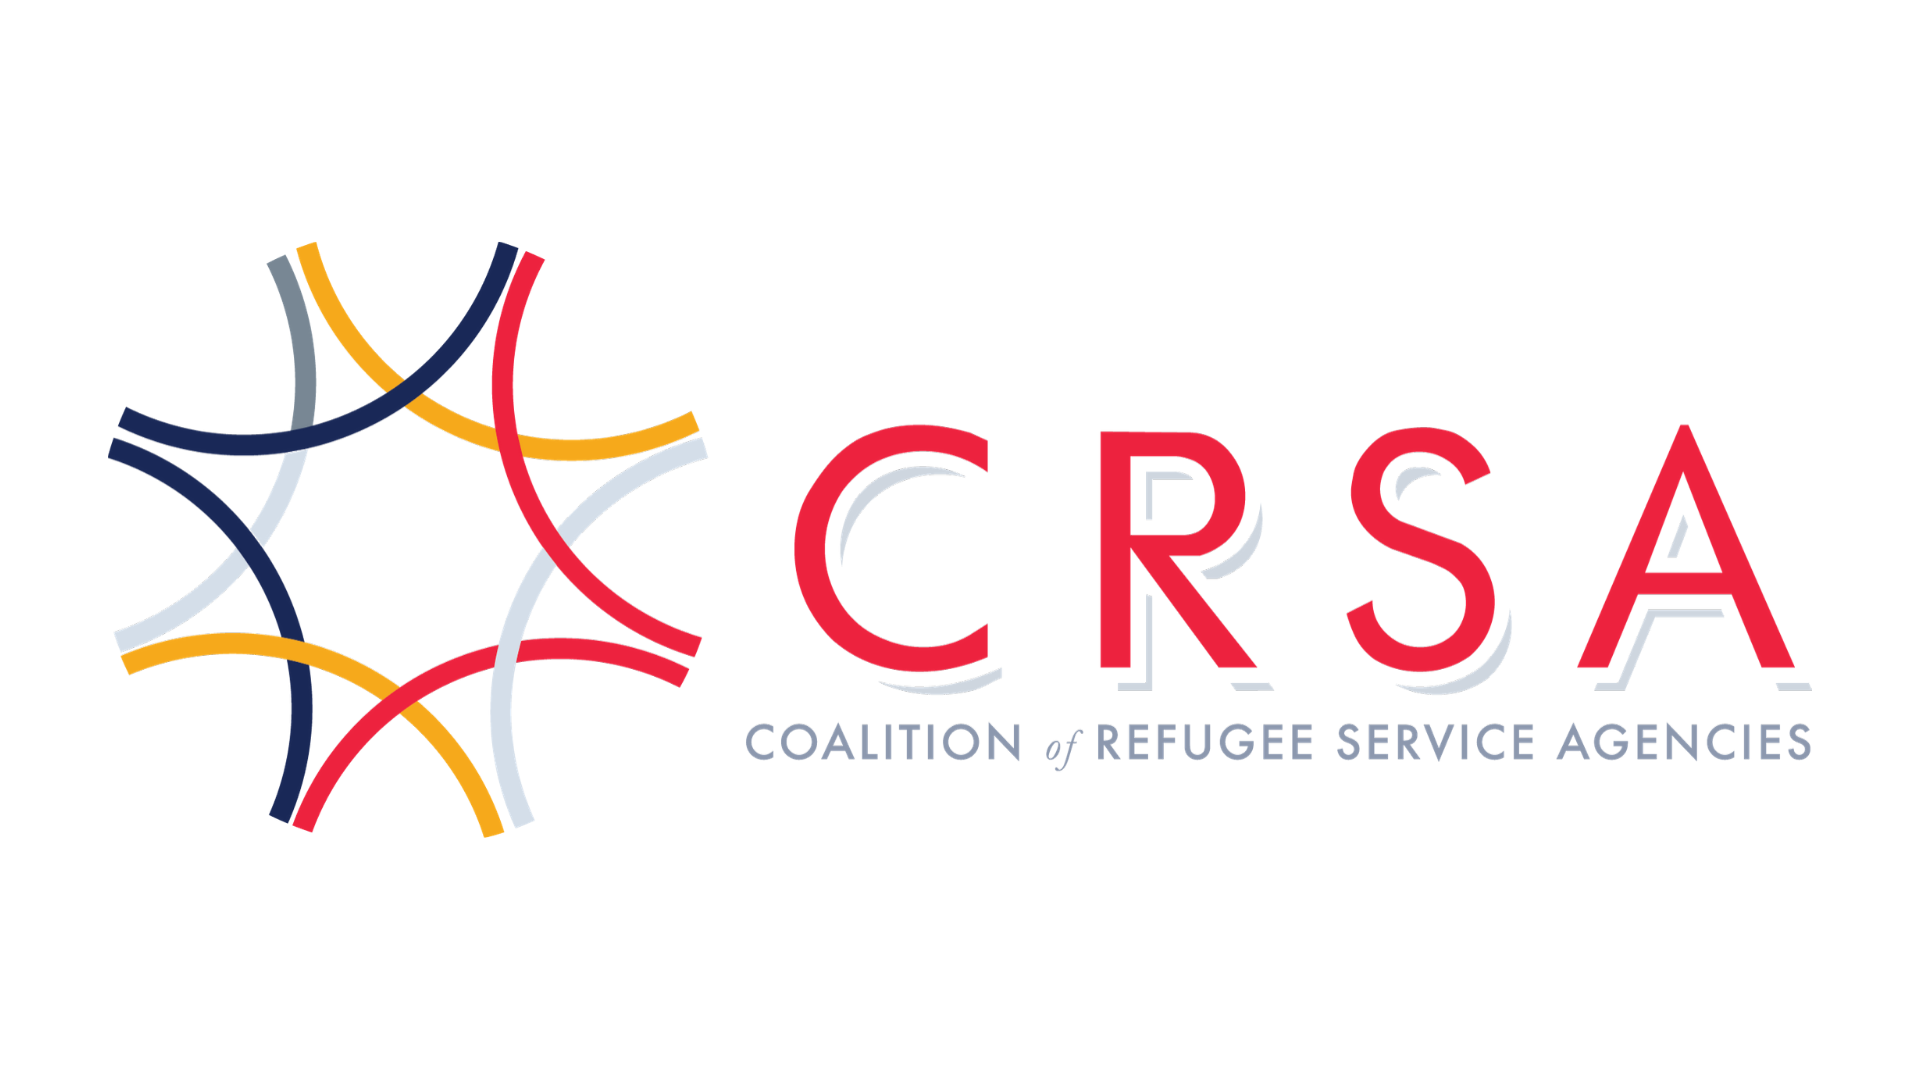 Coalition of Refugee Service Agencies (CRSA) logo on a white background.